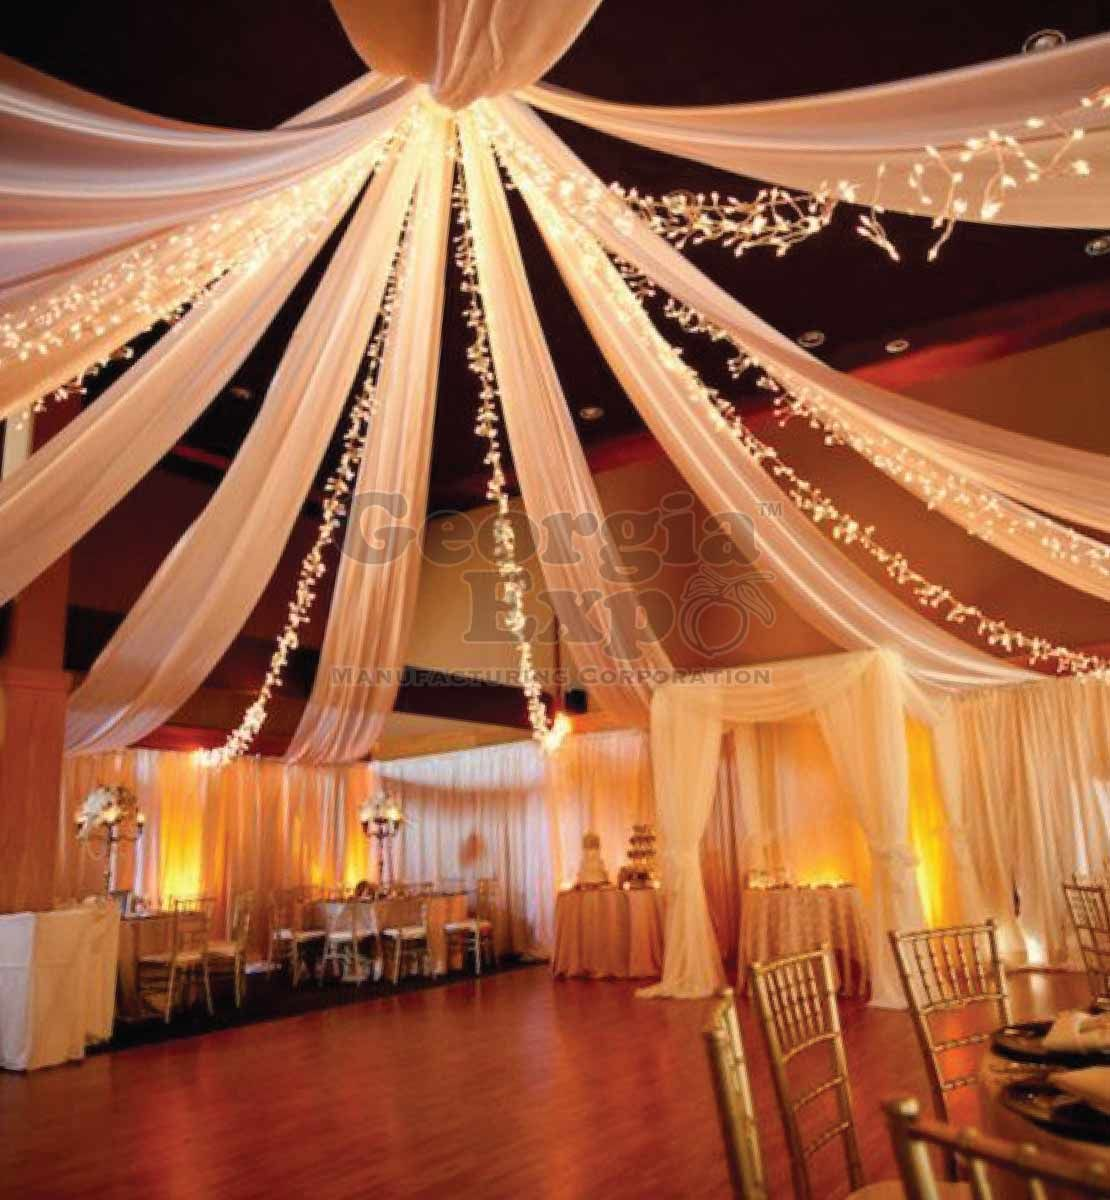 49++ Wedding ceiling drapes with lights ideas in 2021